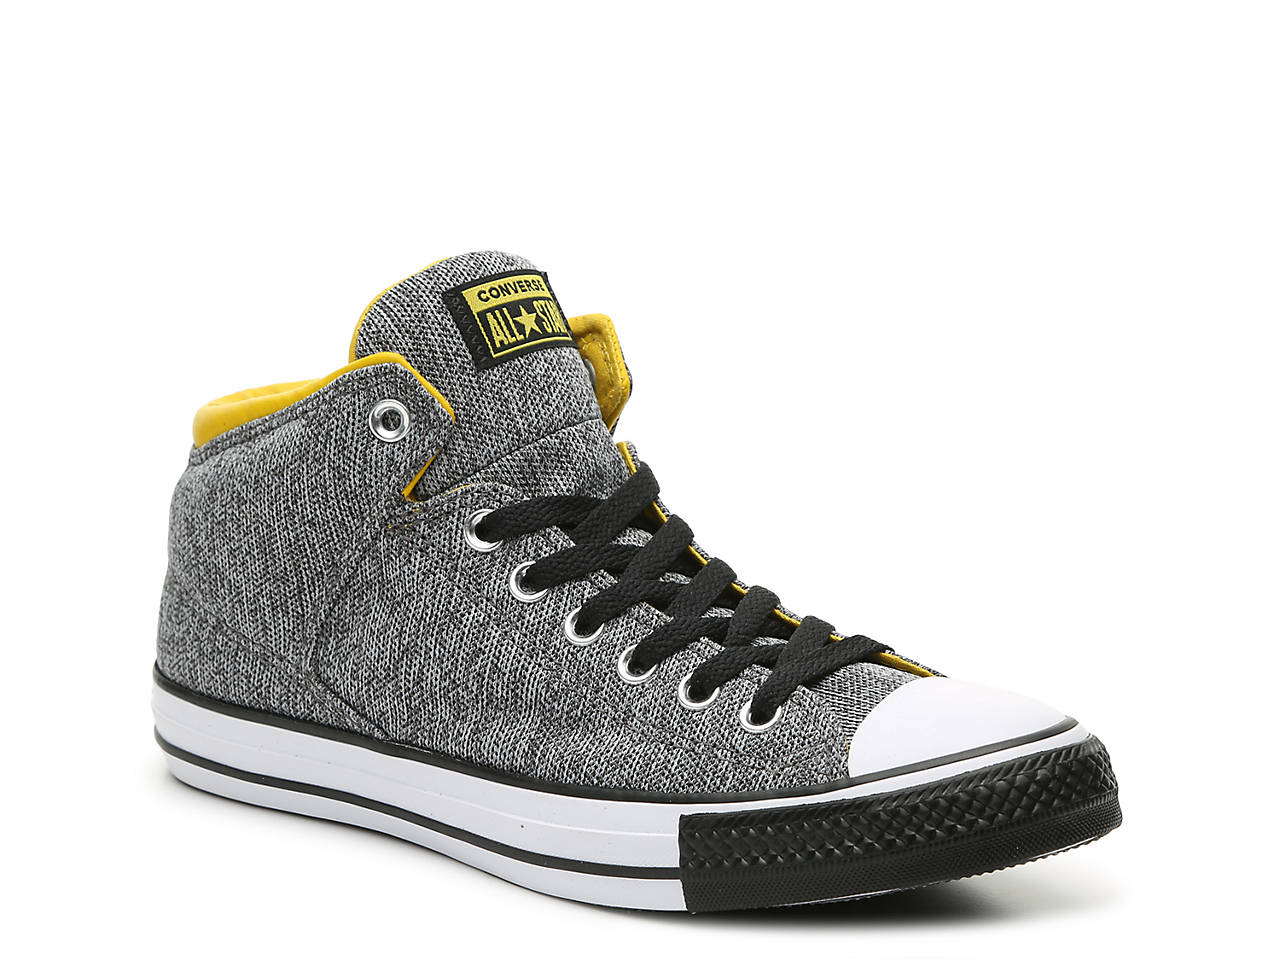 3ba5d8fbbb75d1 Converse Chuck Taylor All Star Street High-Top Sneaker - Men s Men s Shoes